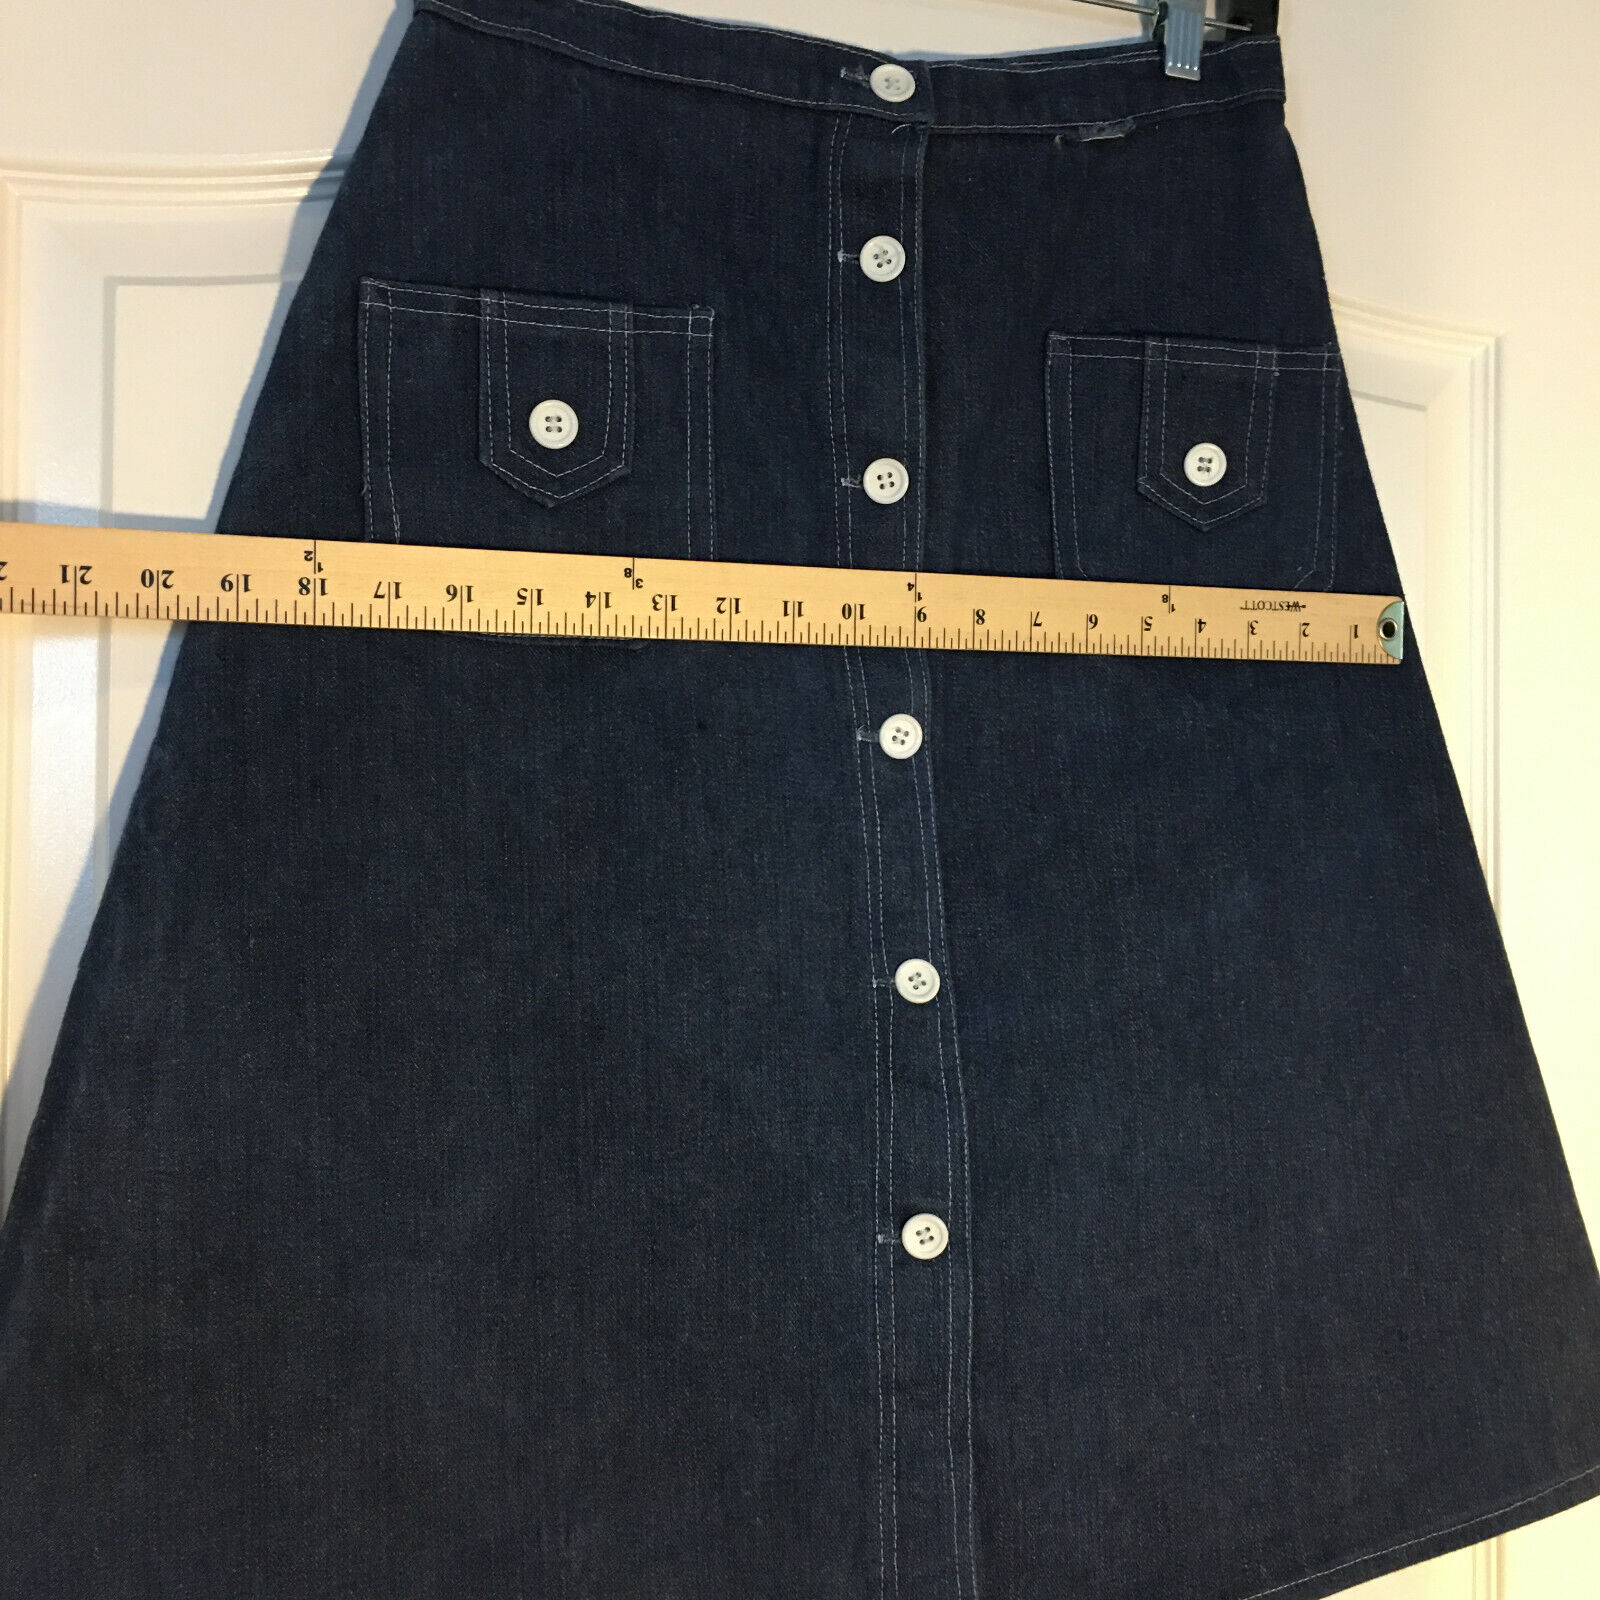 Peekaboo A-Line Vintage Inspired Denim Button Fro… - image 7